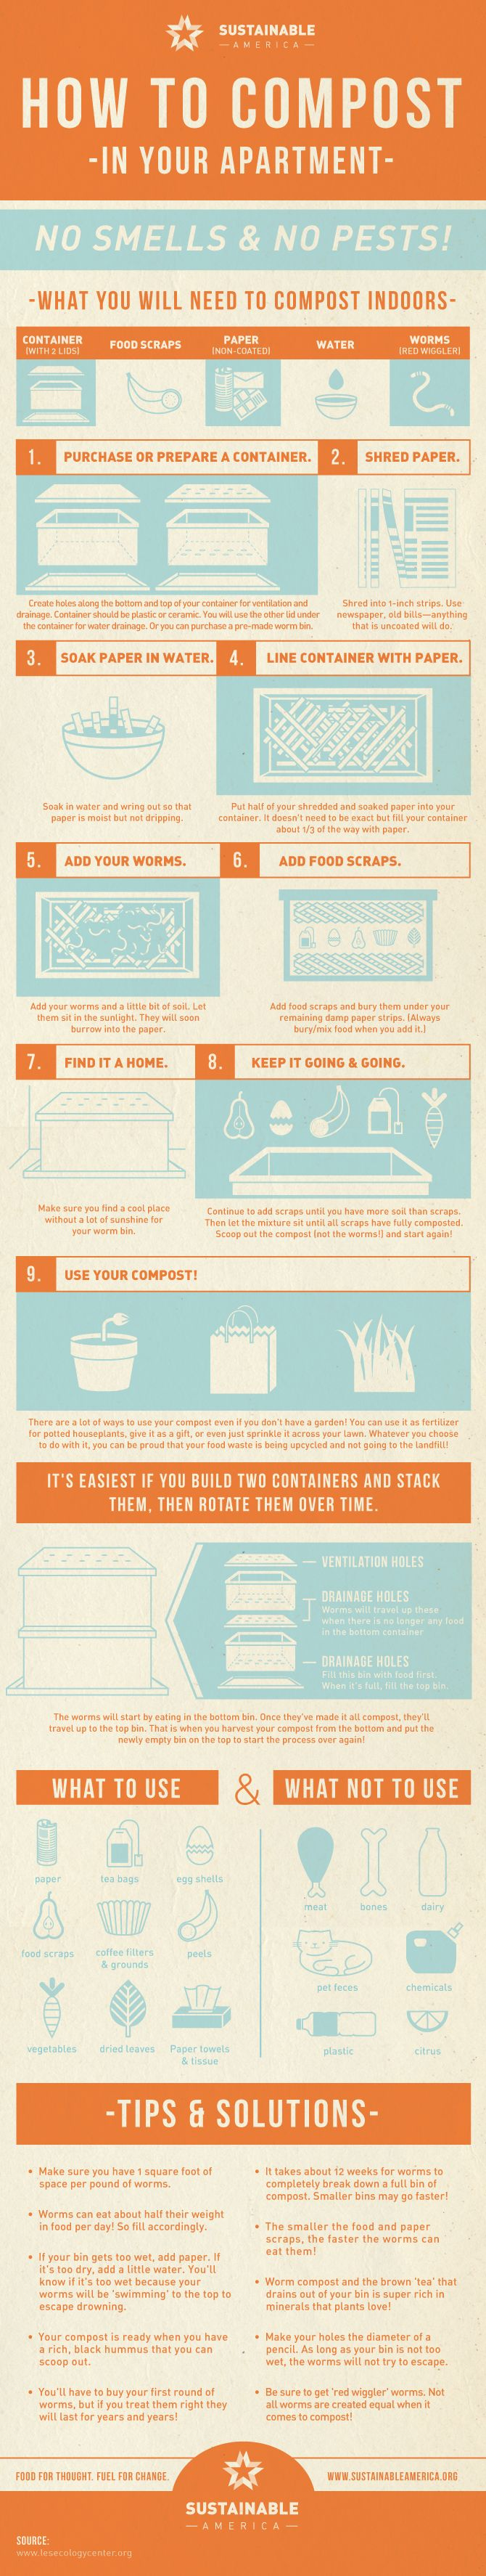 How to Compost in your house without the smell (vermiposting!)